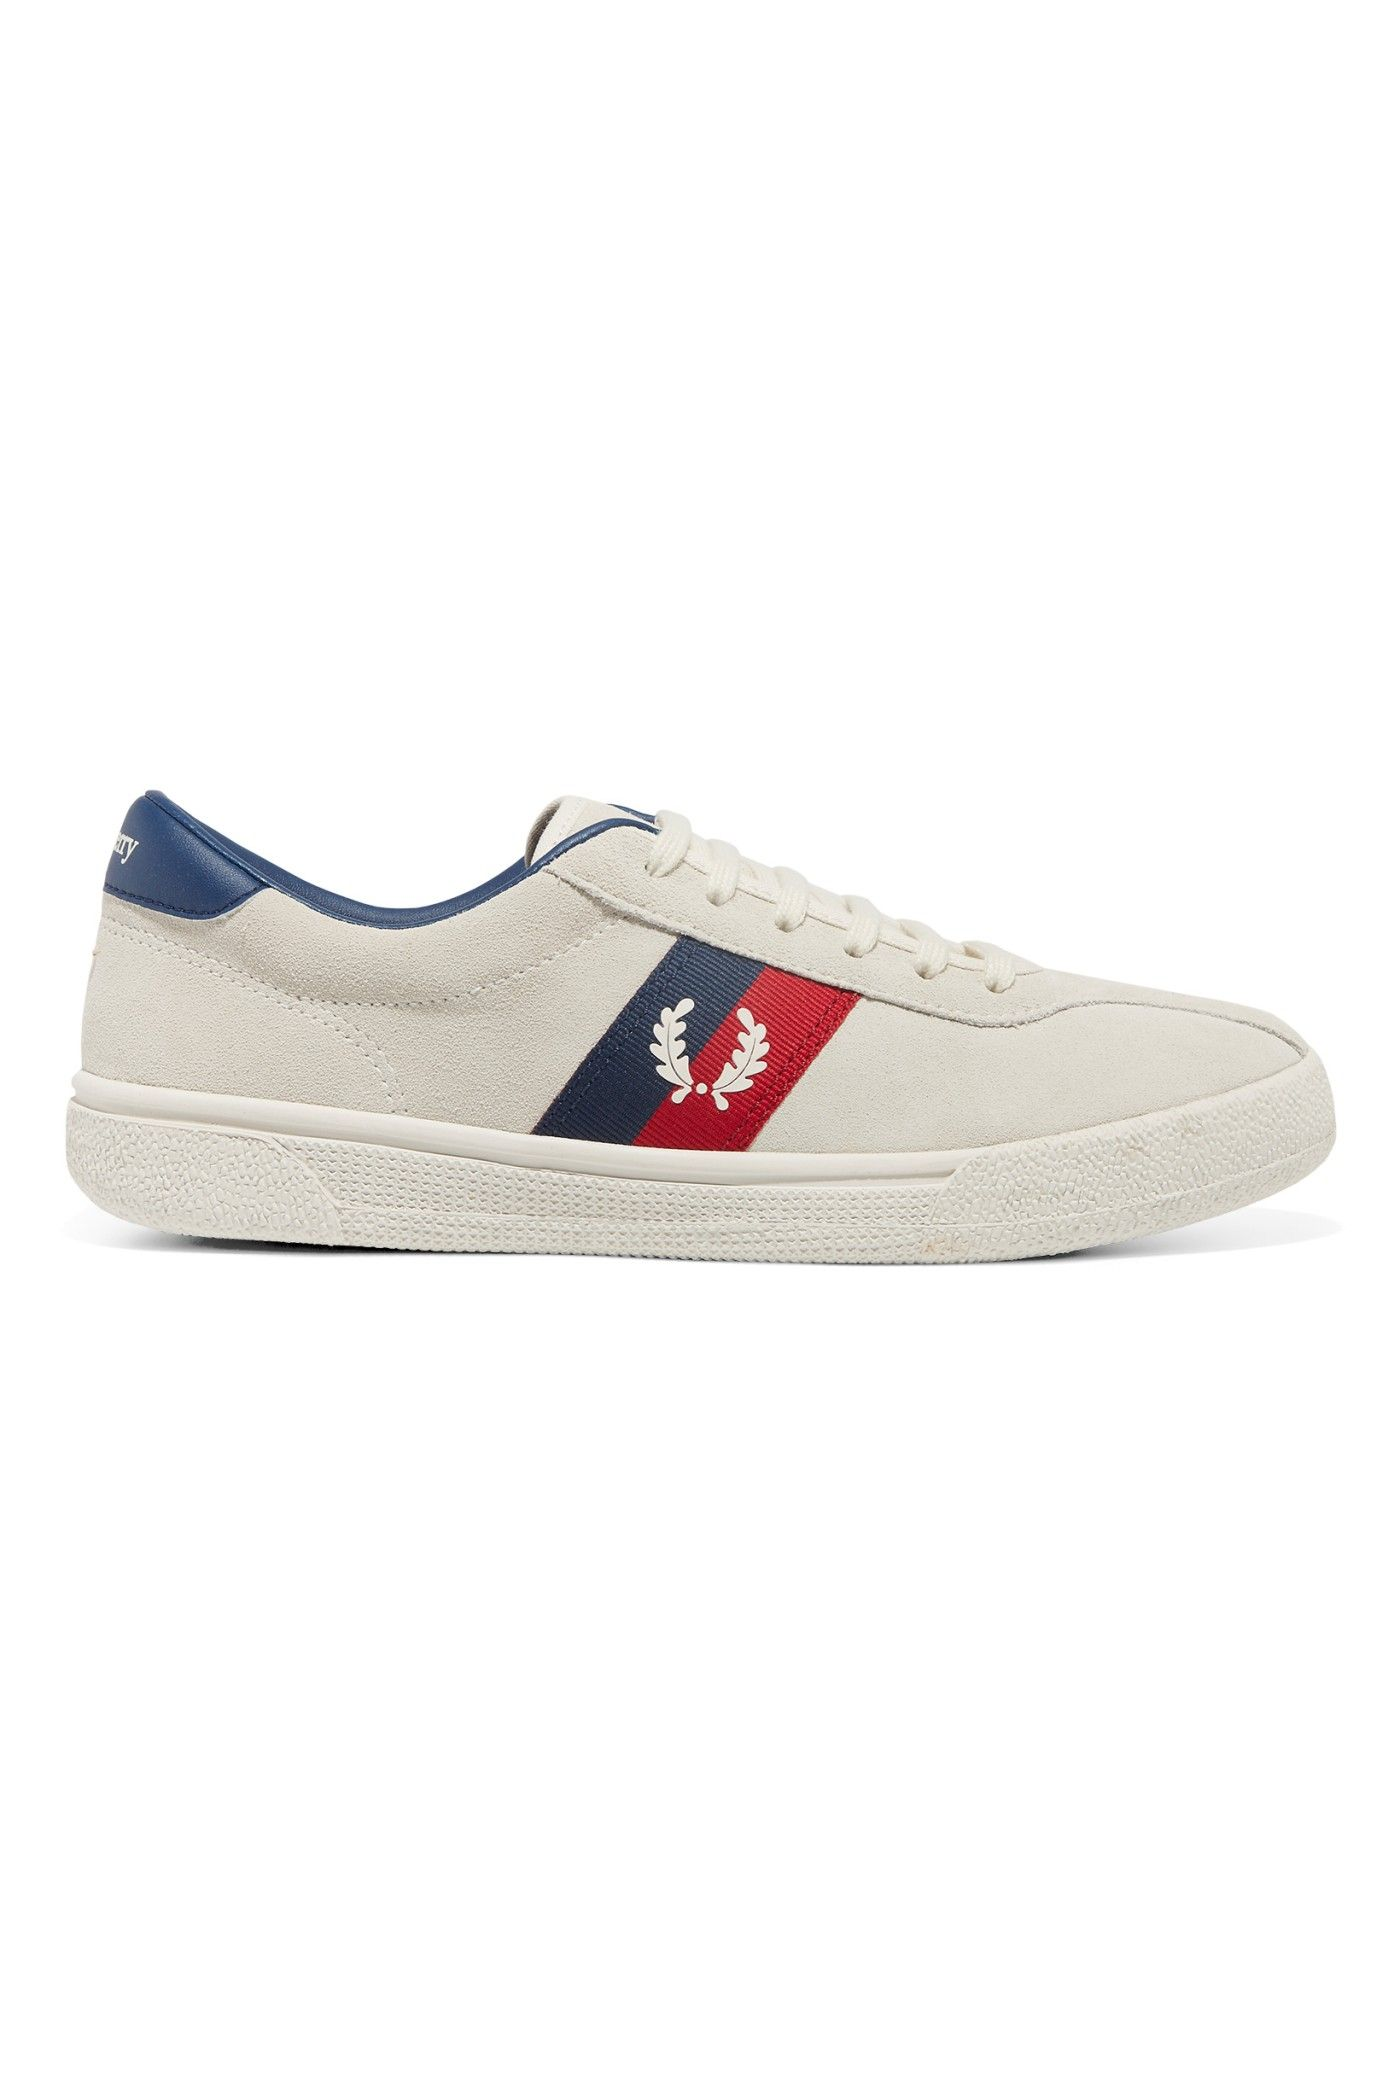 competitive price 63d18 75064 Fred Perry - Sports Authentic B1 Tennis Shoe Suede Snow White